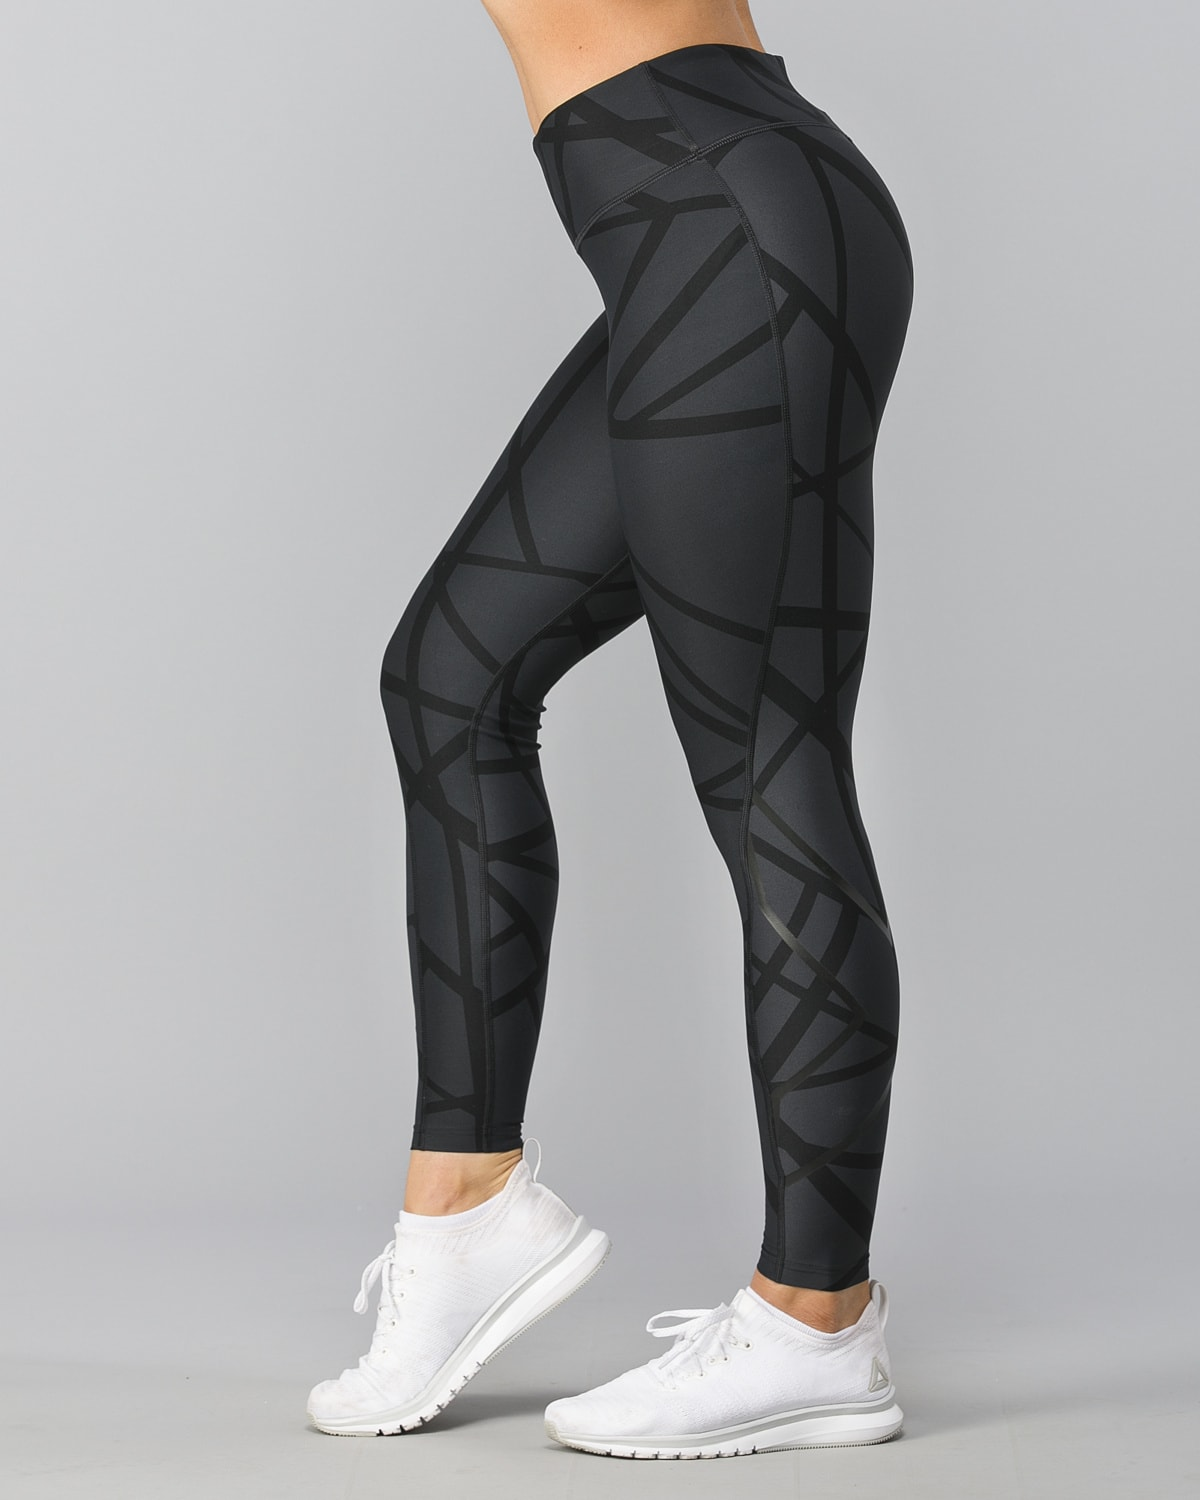 2XU-Print-Mid-Rise-Comp-Tights–Paint-Strokes-Nero1